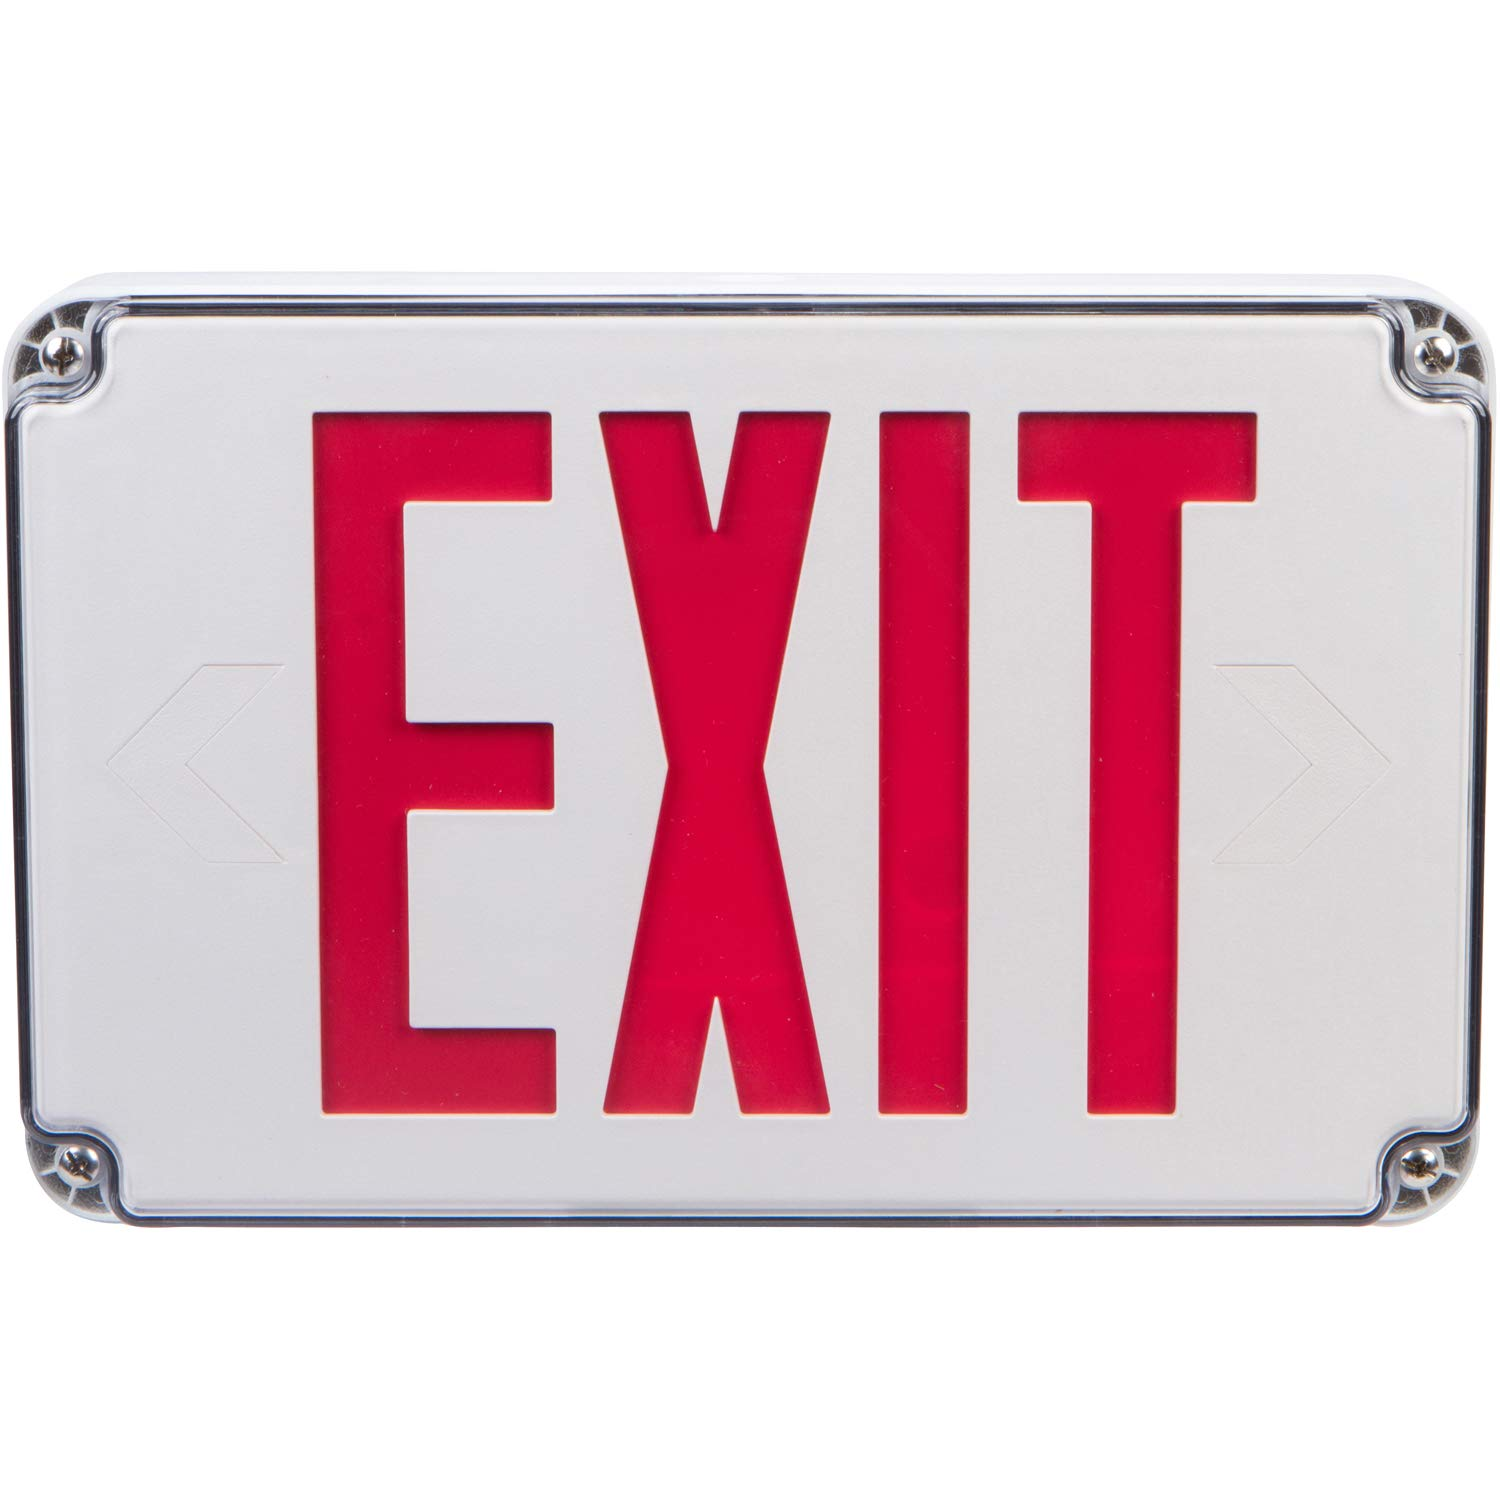 Morris Products Wet Location LED Exit Sign – Red with White Housing – Ni-Cad Battery Backup - Fully Automatic – Resistant to Humidity, Washdown Environment – Self-Contained – Energy Saving